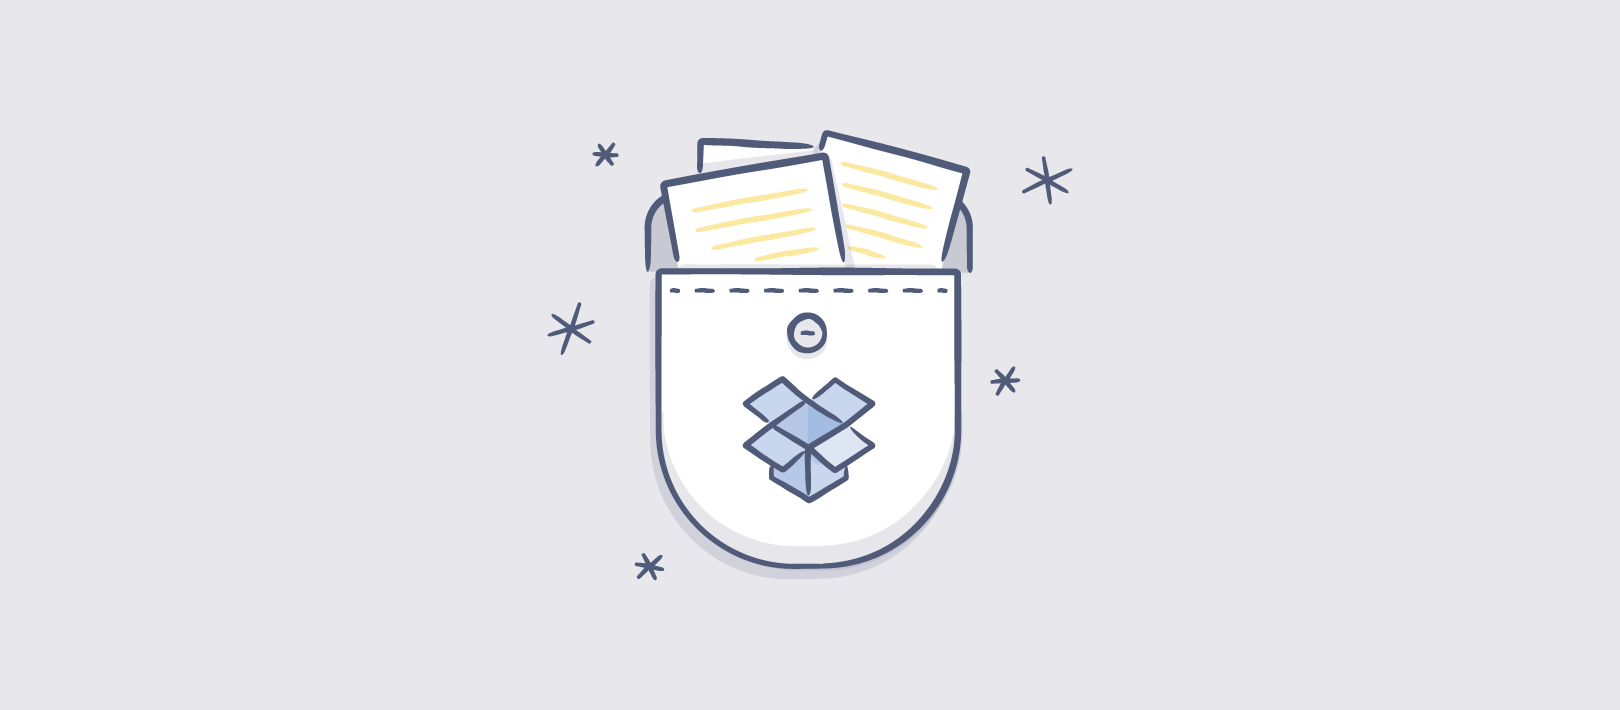 Dropbox is now storing and serving over 90%  users data on custom-built infrastructure.